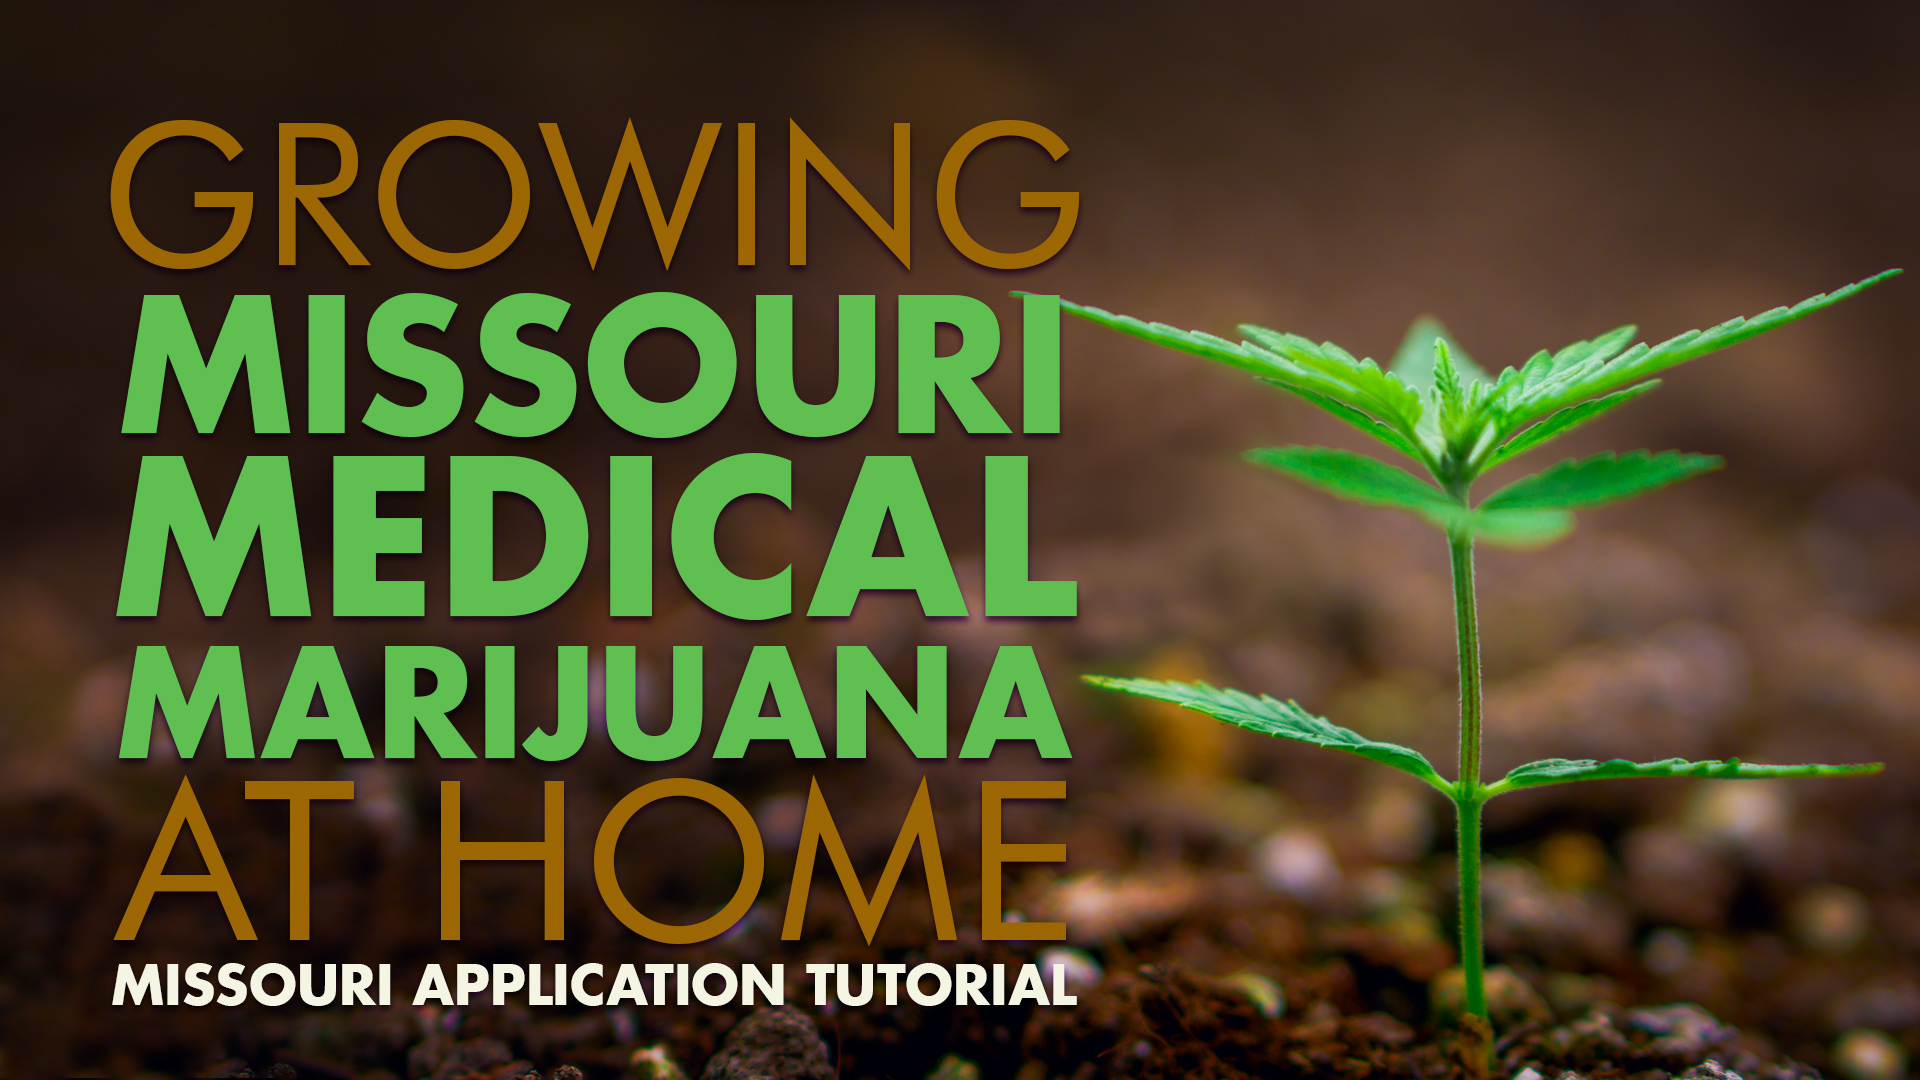 Growing Missouri Medical Marijuana At Home | Green Health